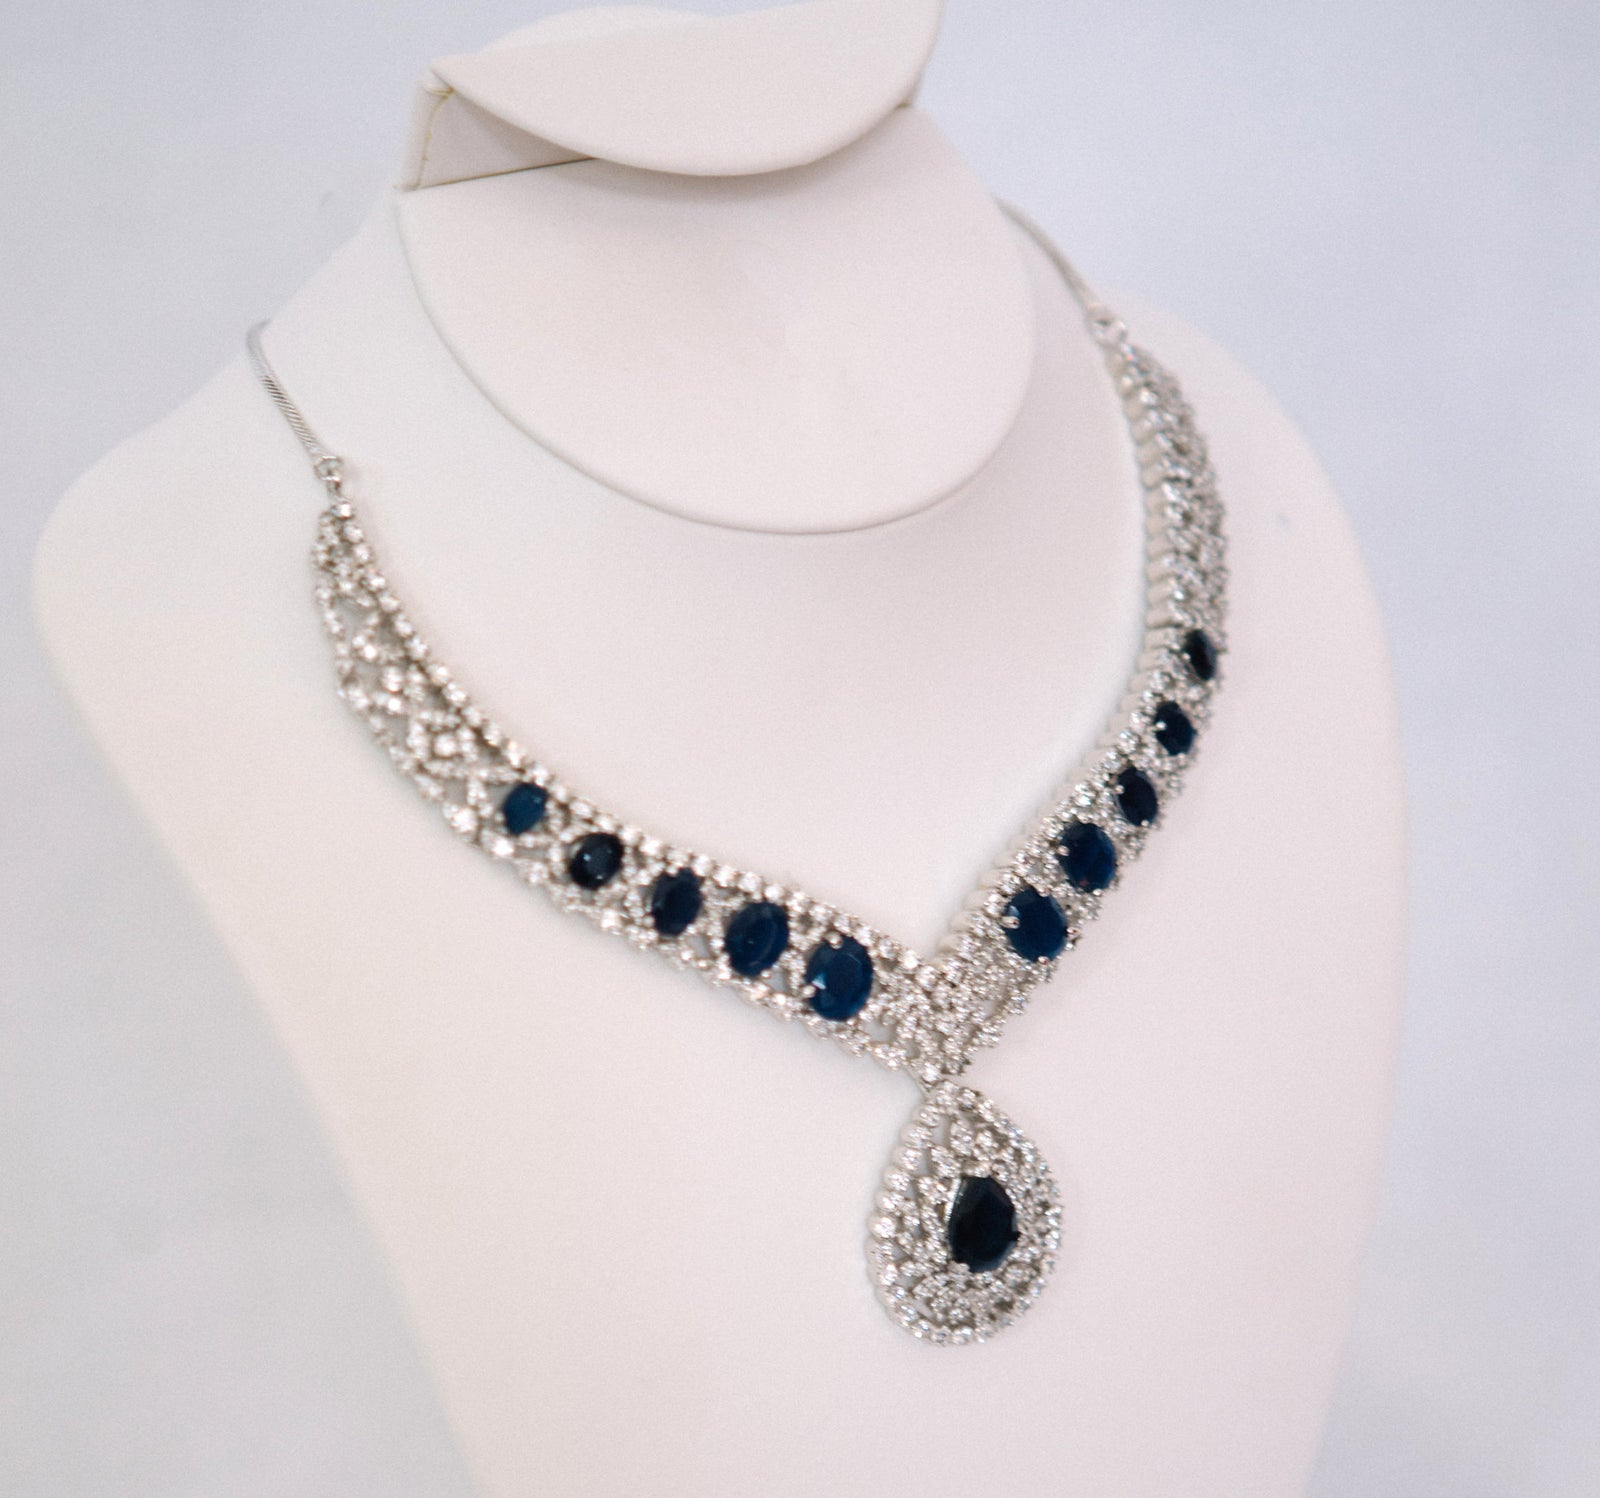 Silver w/ Blue Necklace